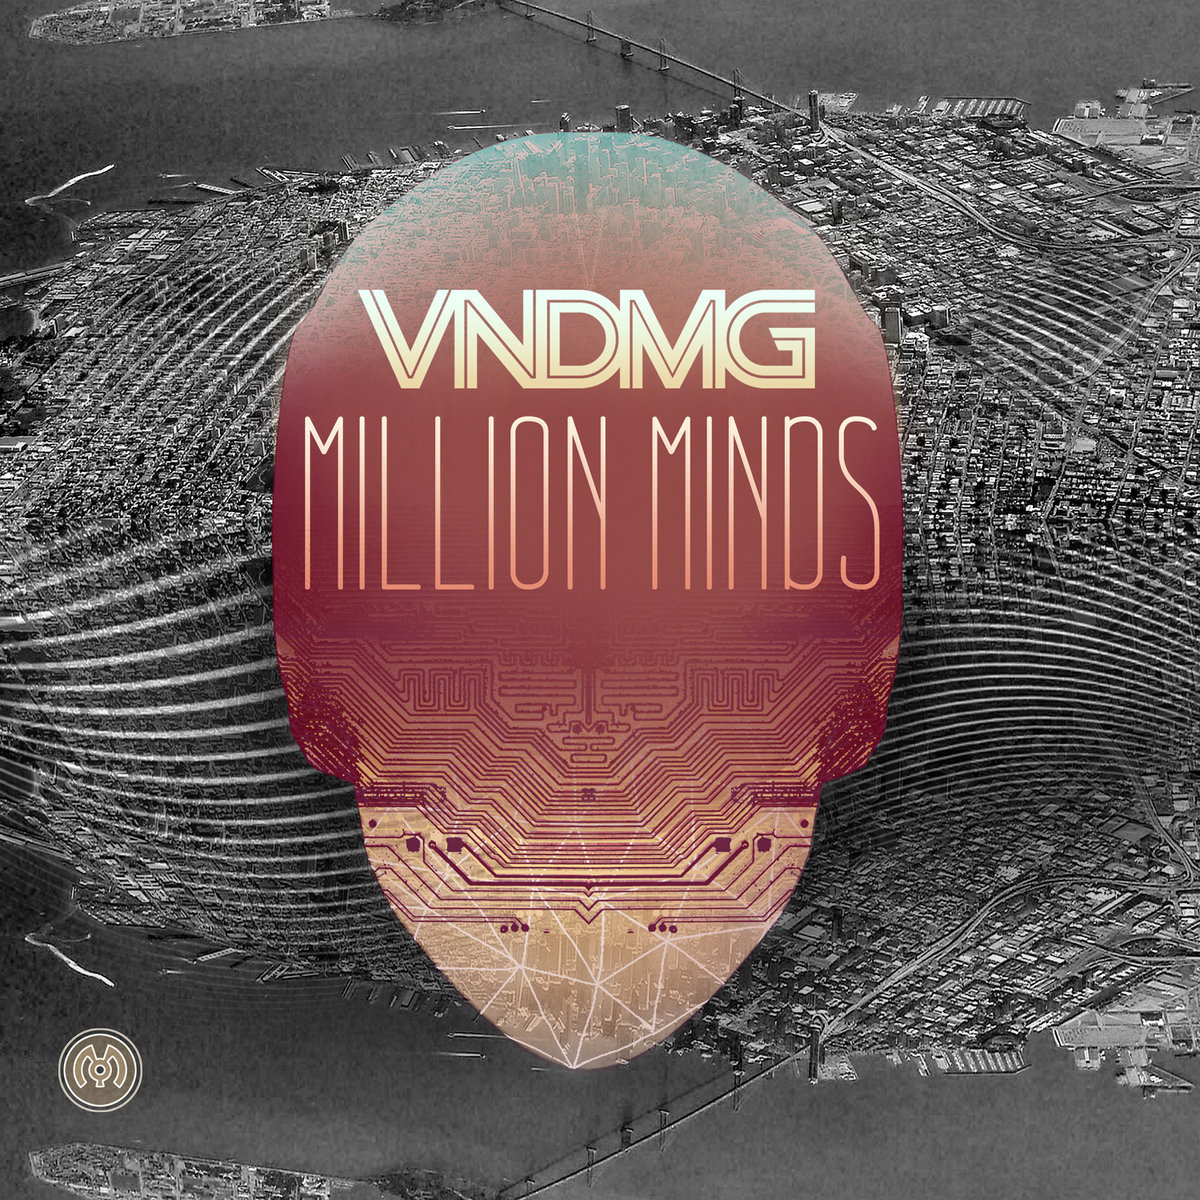 VNDMG - Daggers At Dawn @ 'Million Minds' album (electronic, dubstep)